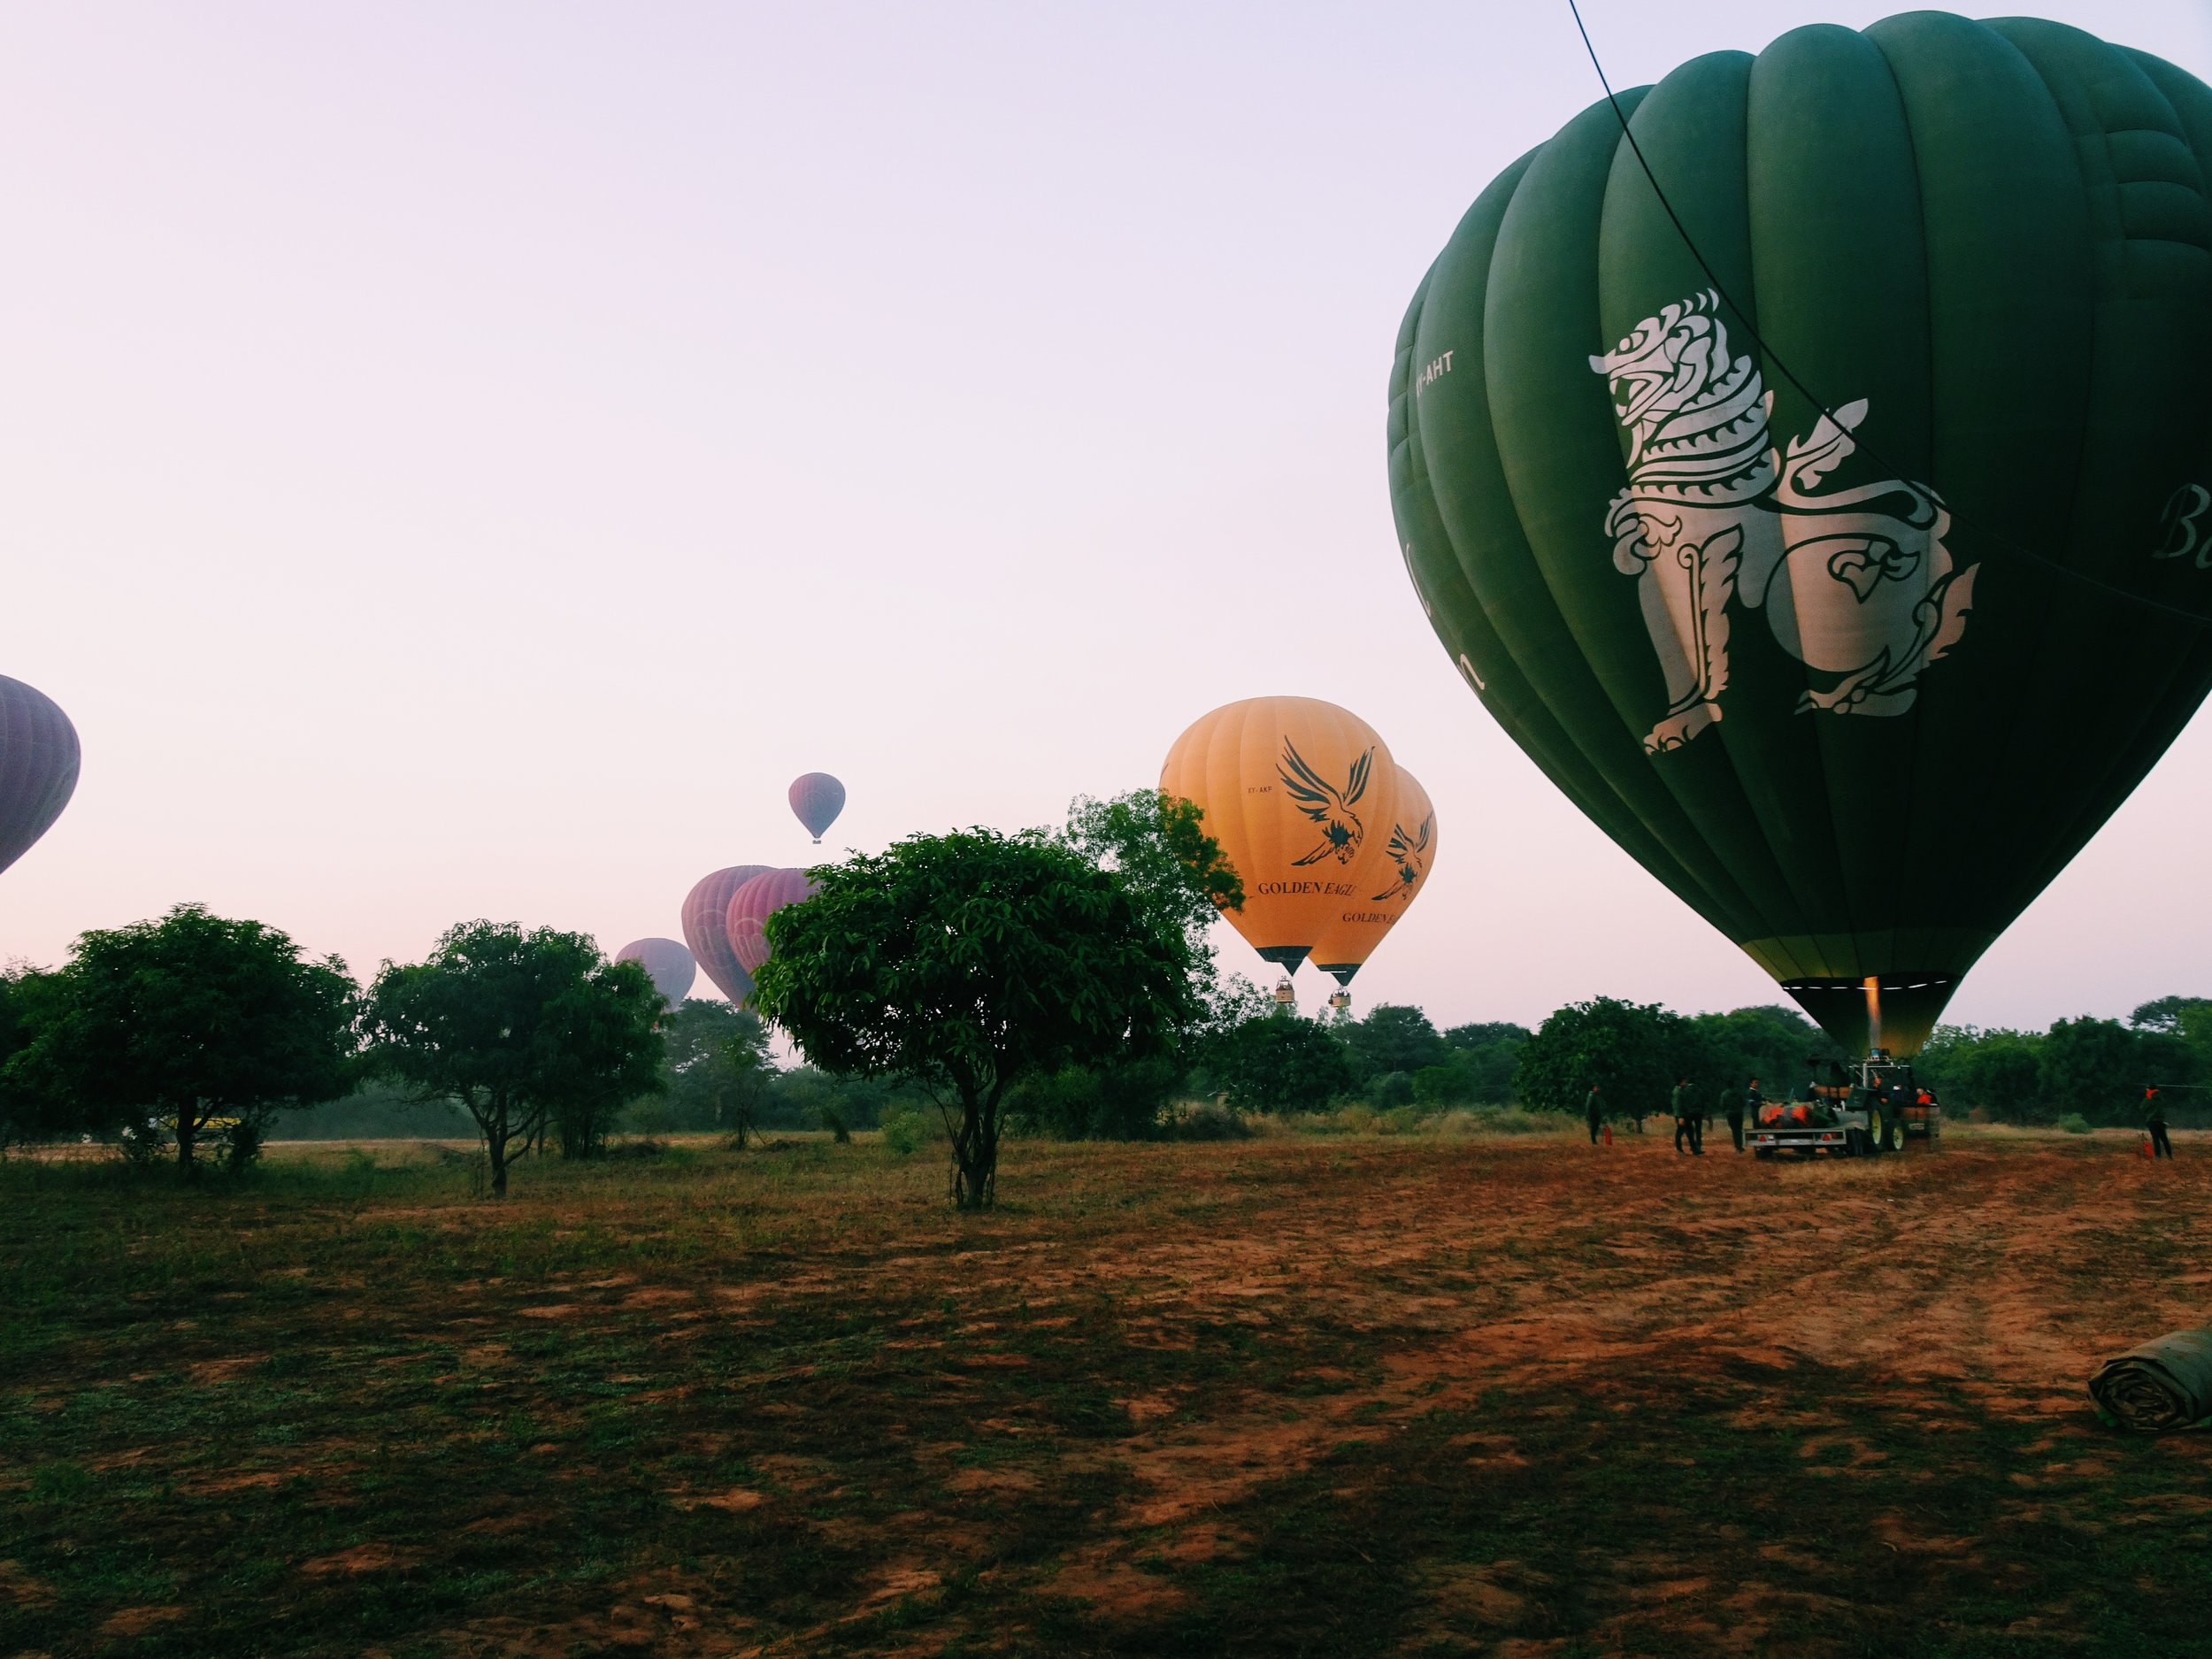 The perfect day bagan balooning